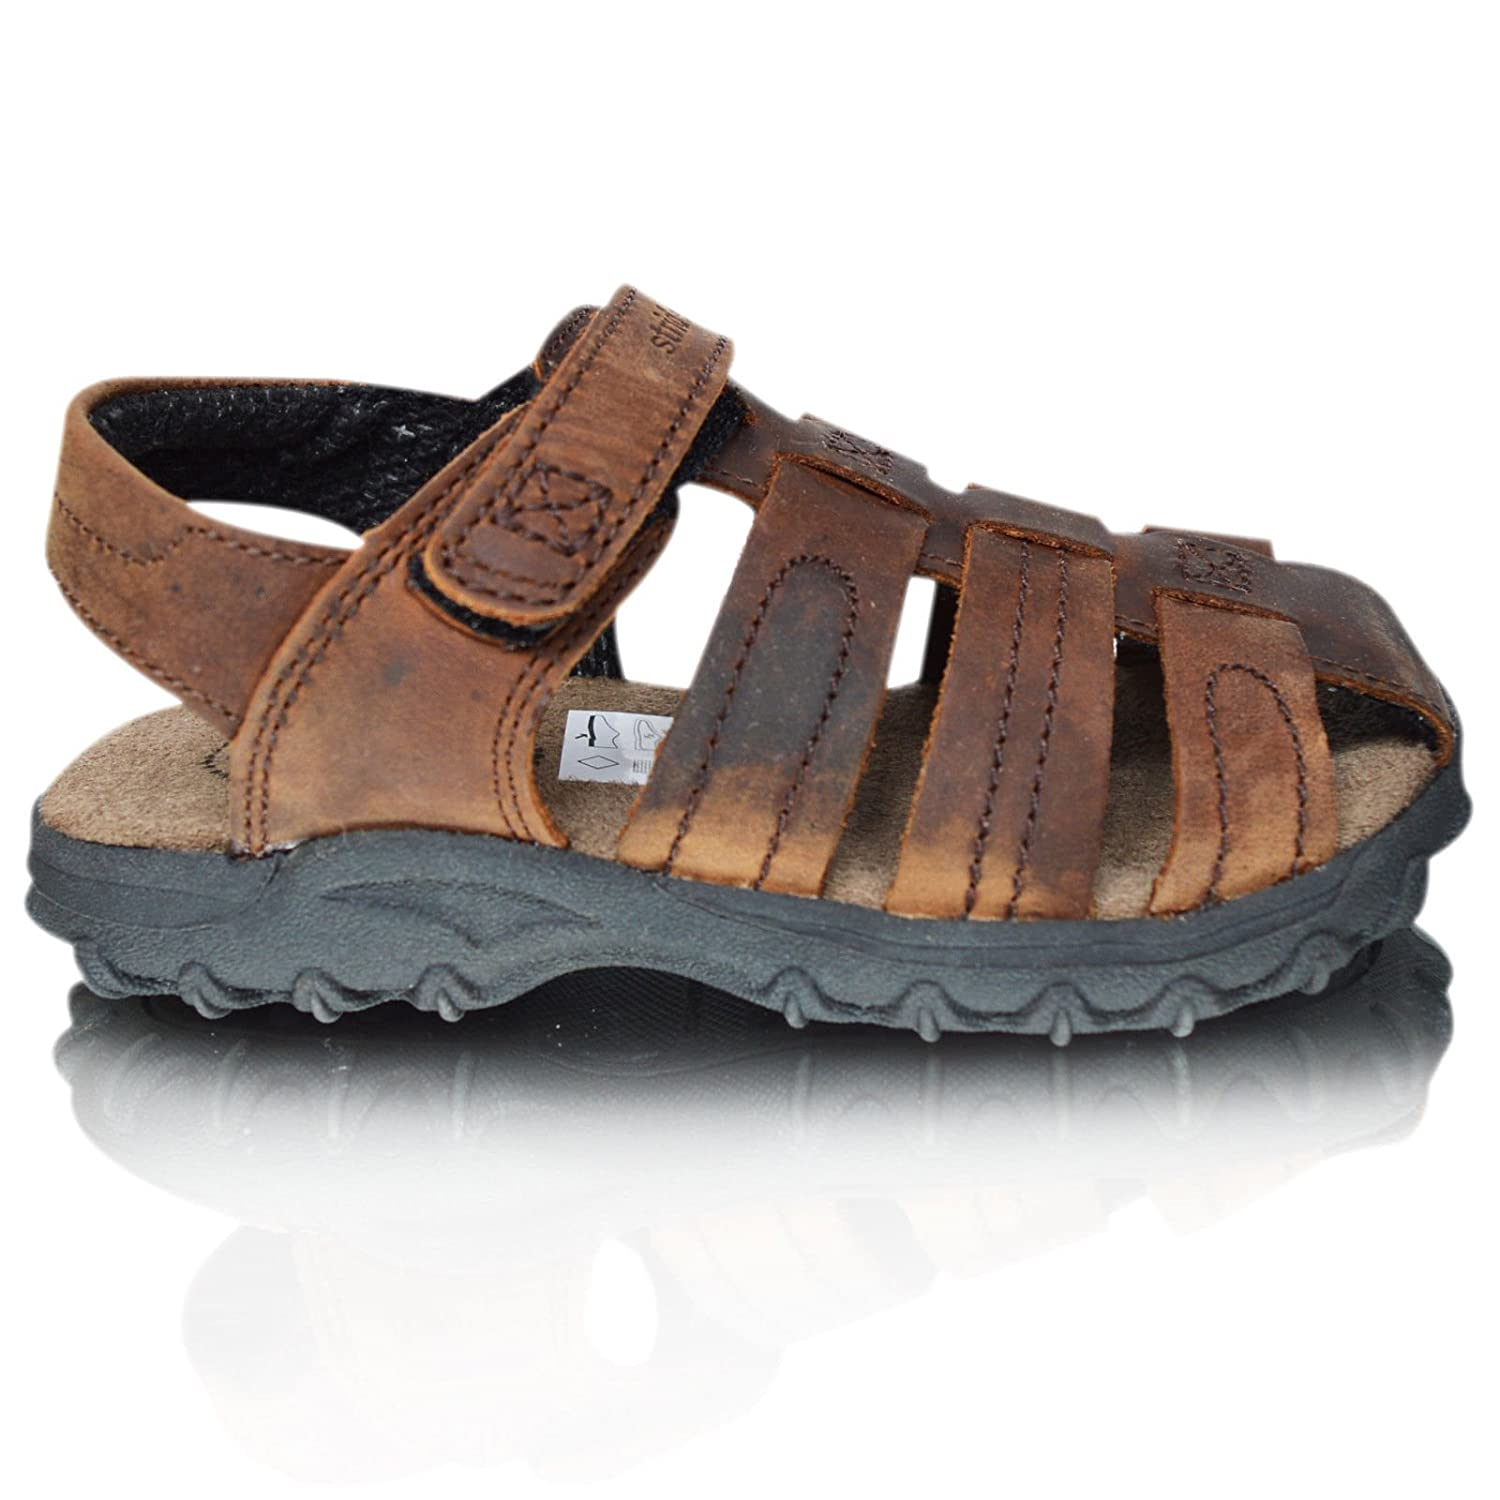 2027a827e2e24 Xelay Boys Leather Brown Fisherman Sports Summer Sandals Size Toddlers Child  UK 7 8 9 10 ...